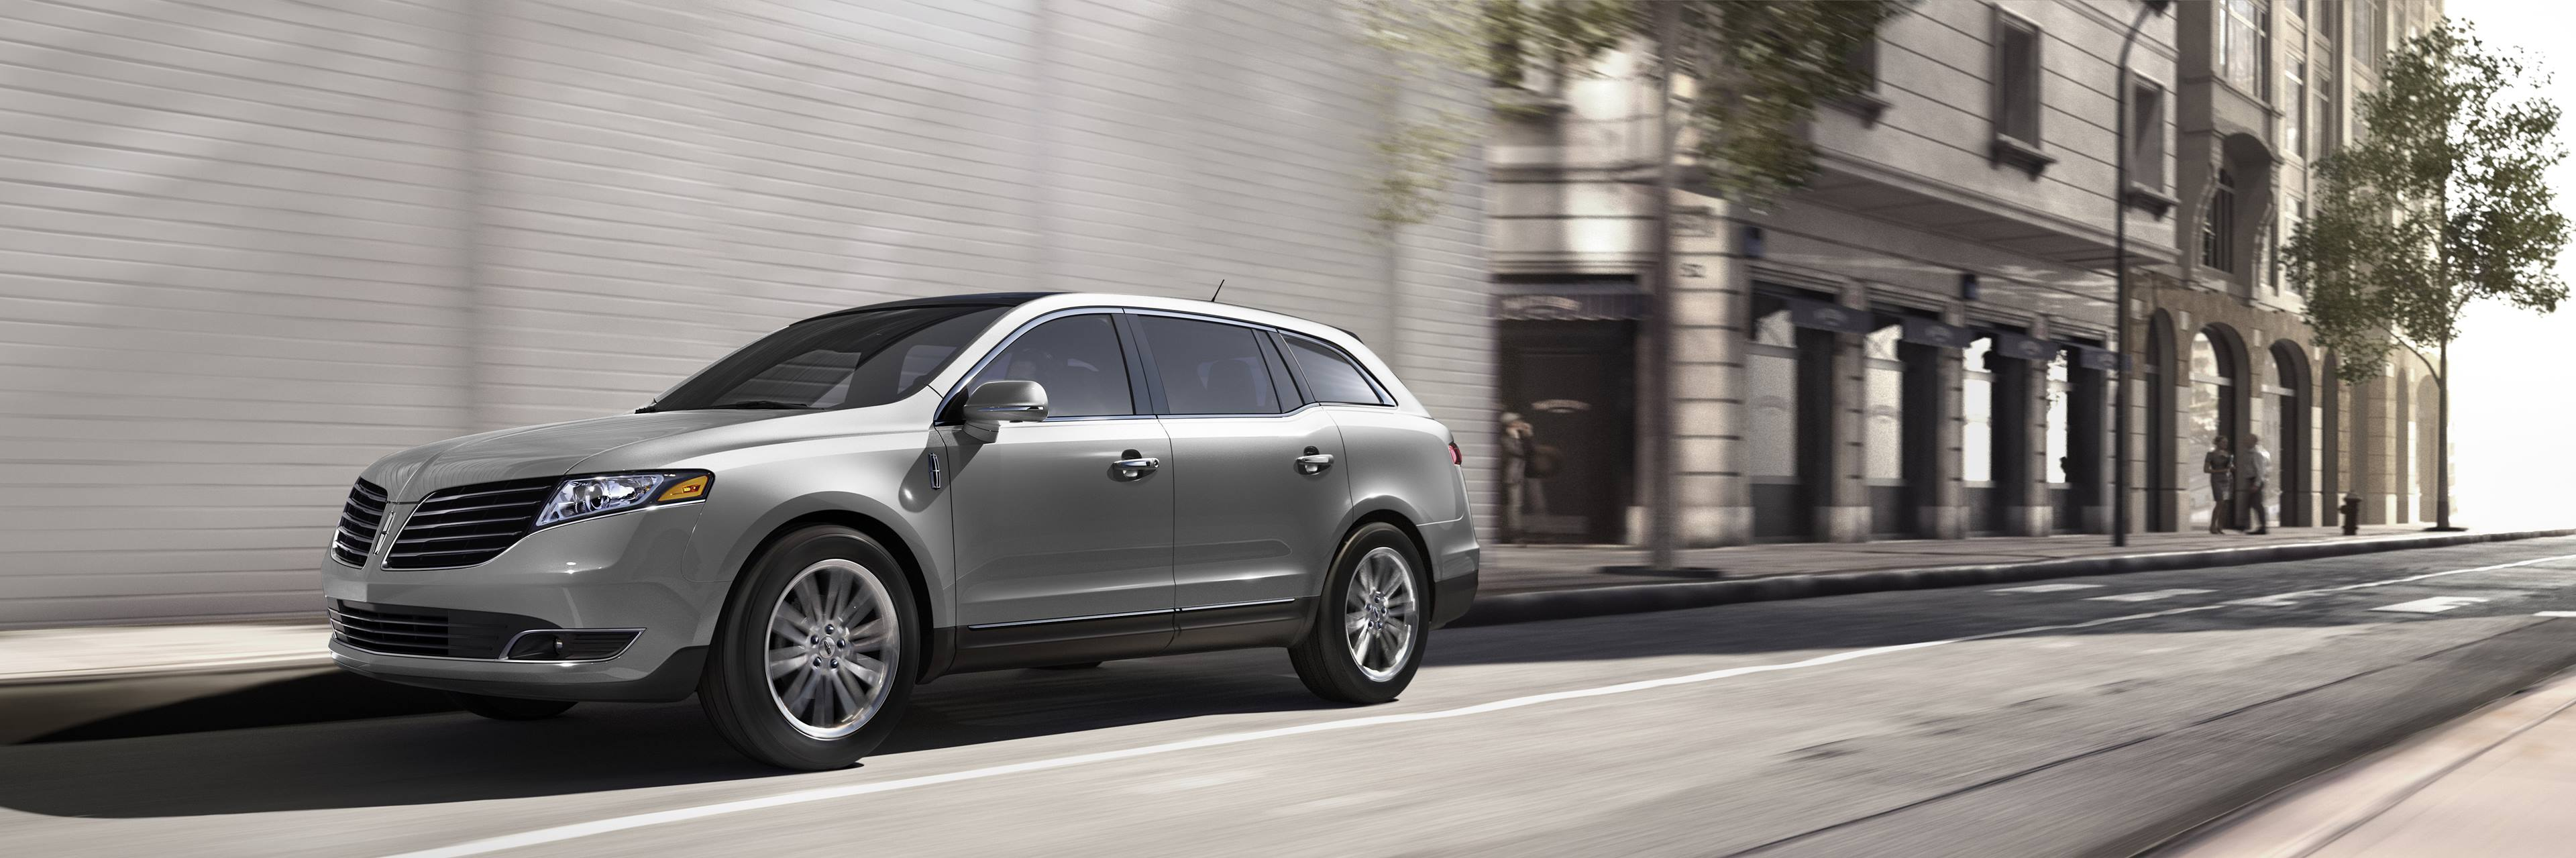 Lincoln MKT driving front 3/4